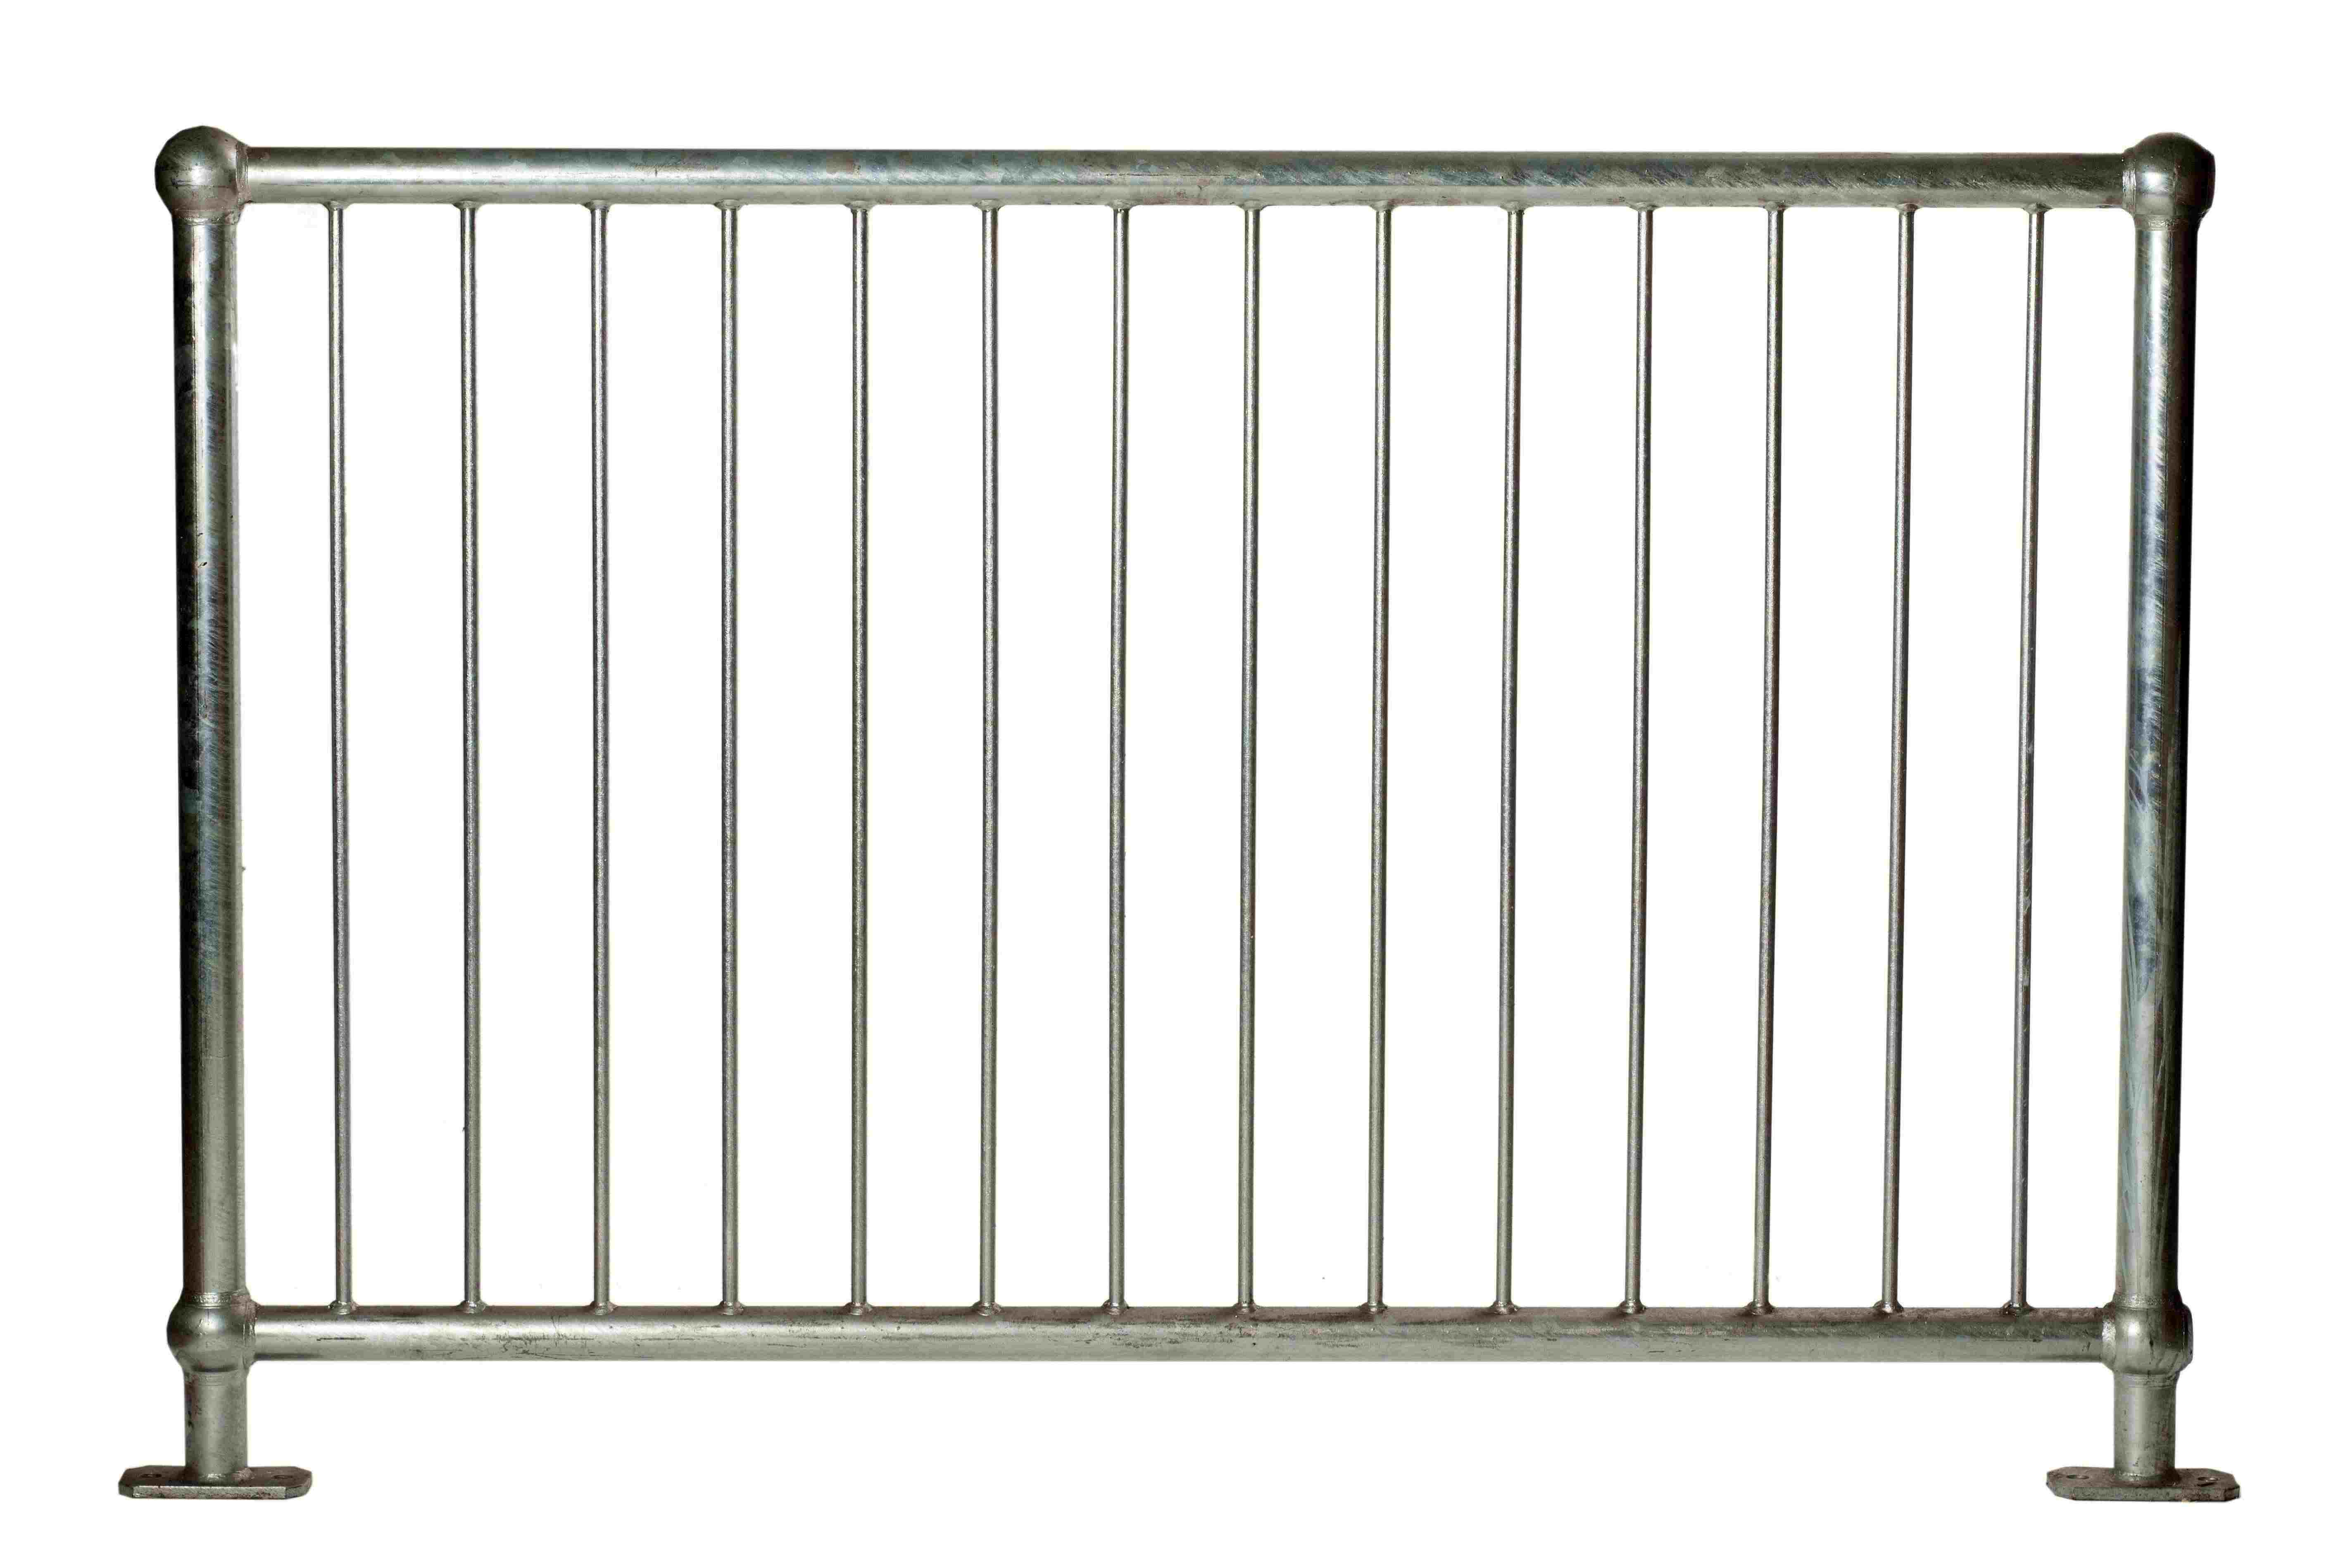 Webforge Asia monowills and handrail stanchions safety barrier